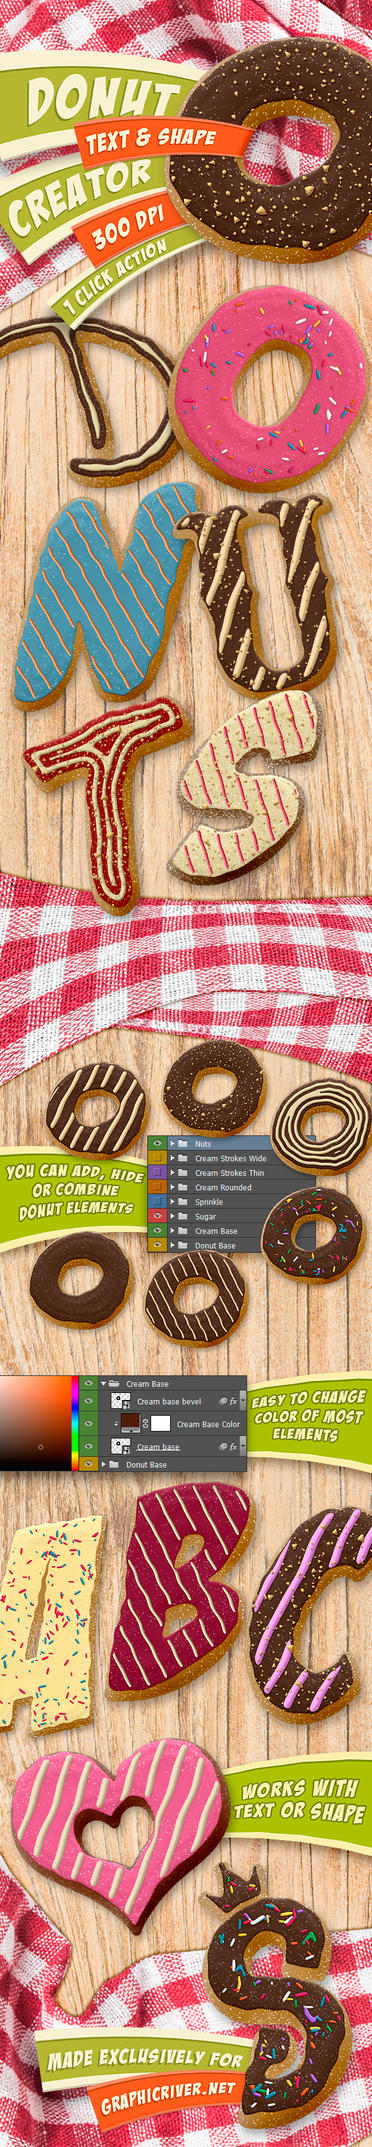 Donut Creator - Text and Shape Photoshop Action by survivorcz